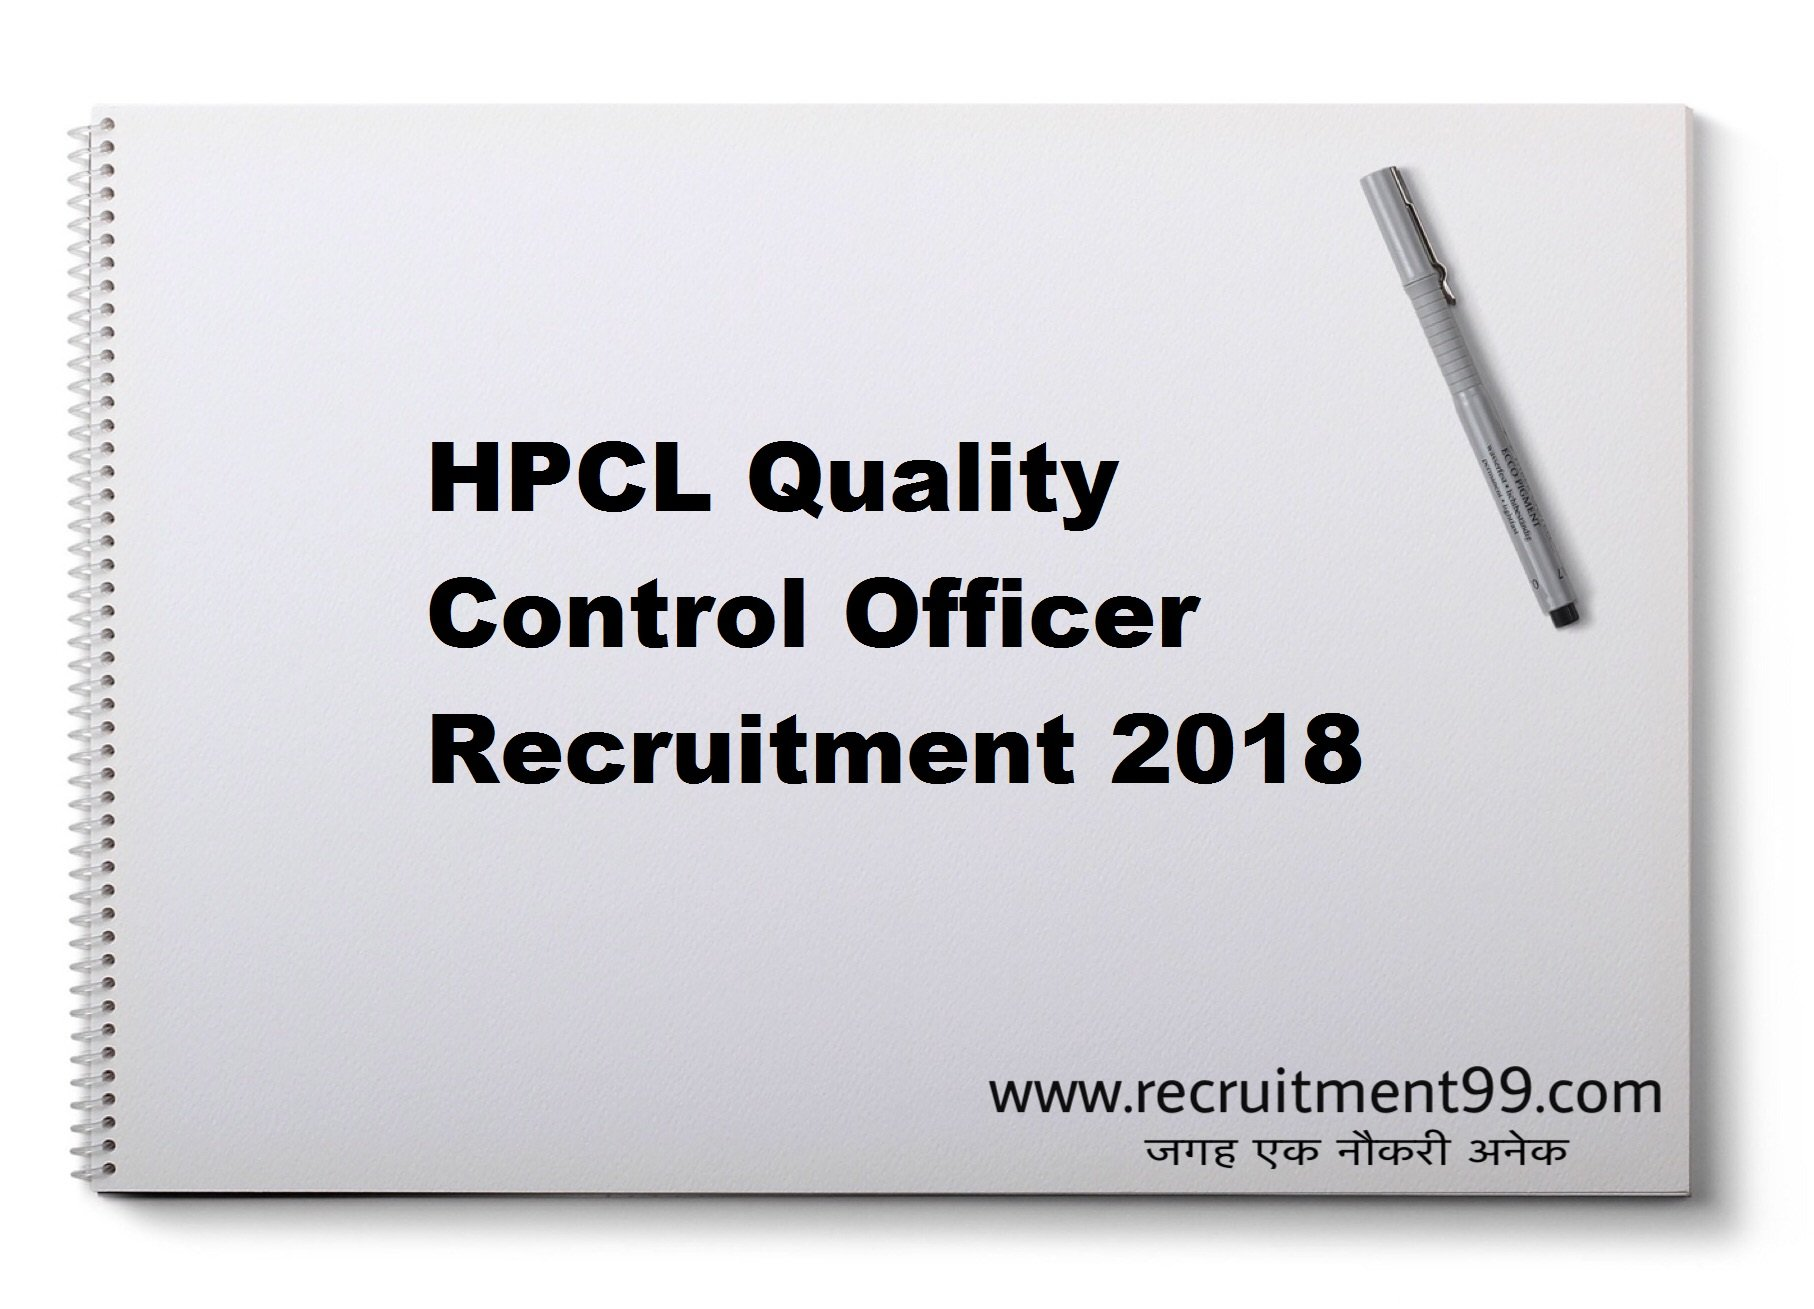 HPCL Quality Control Officer Recruitment Admit Card Result 2018